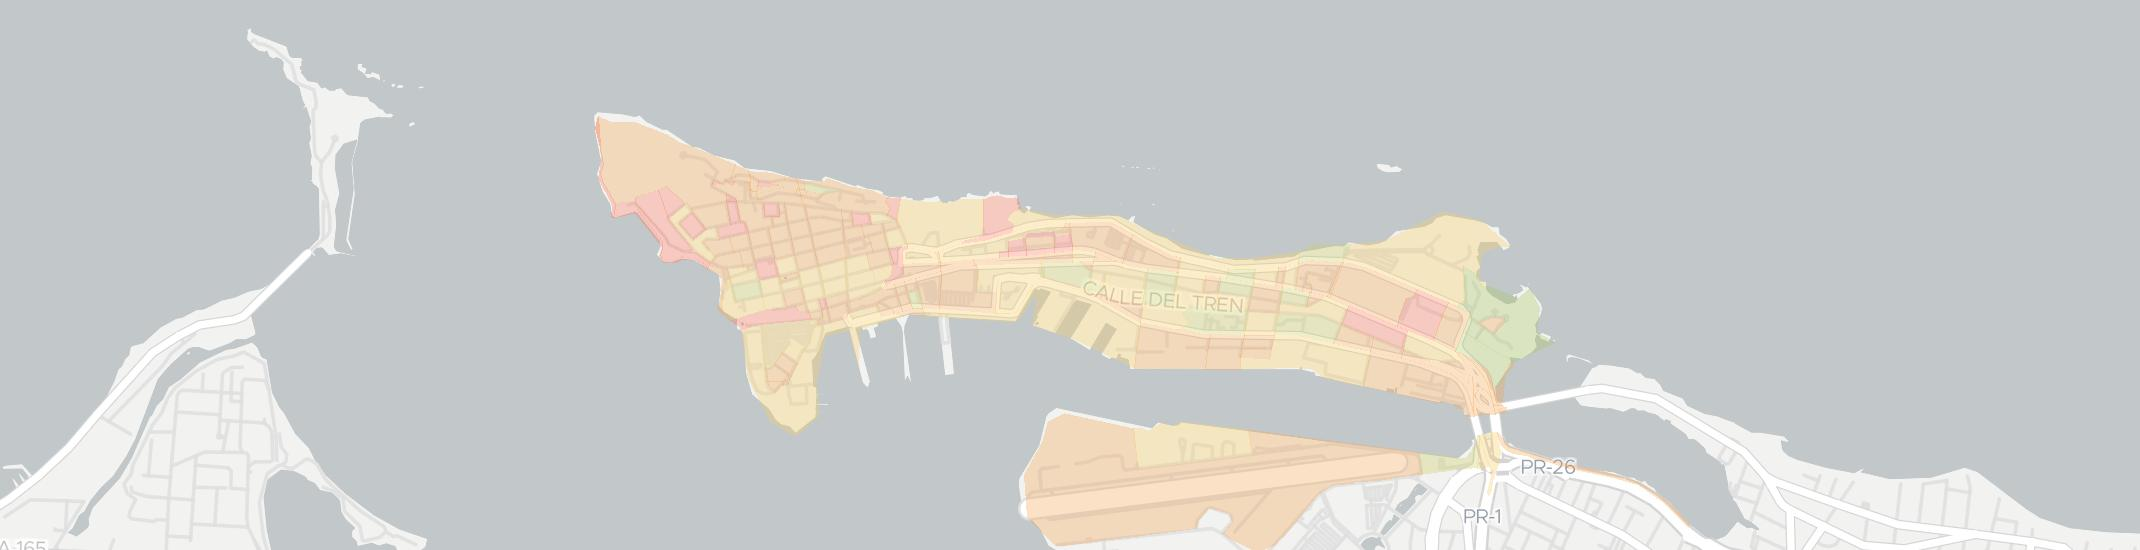 Old San Juan Internet Competition Map. Click for interactive map.